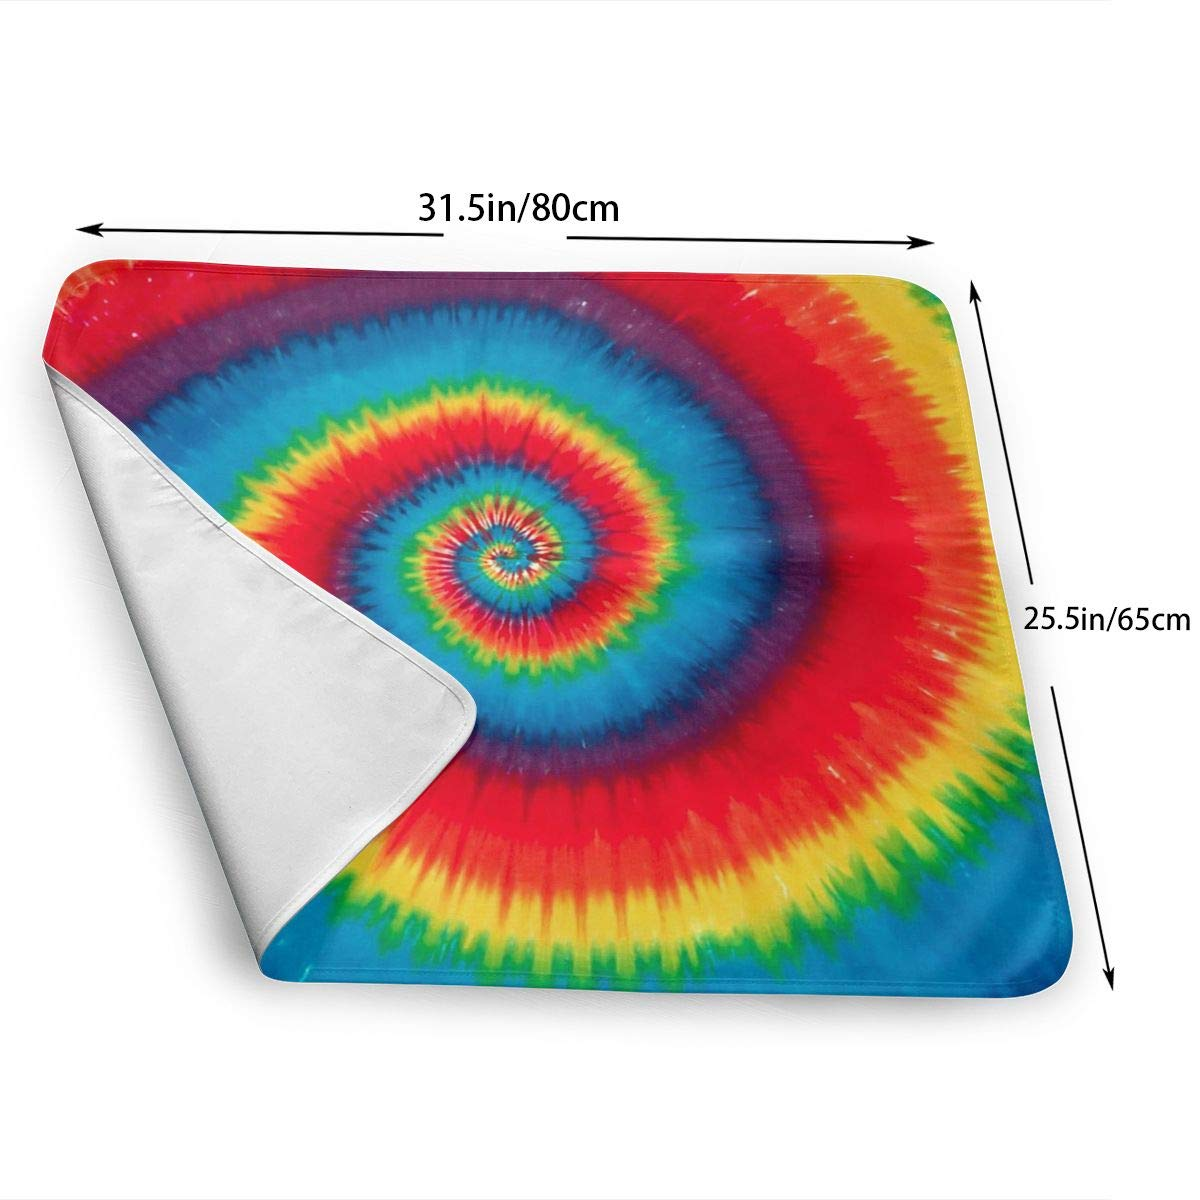 HOKICGR Tie Dye Pattern Print Reusable Changing Mat Portable Changing Travel Home Change Mat Organizer Bag Newborn Storage Bag